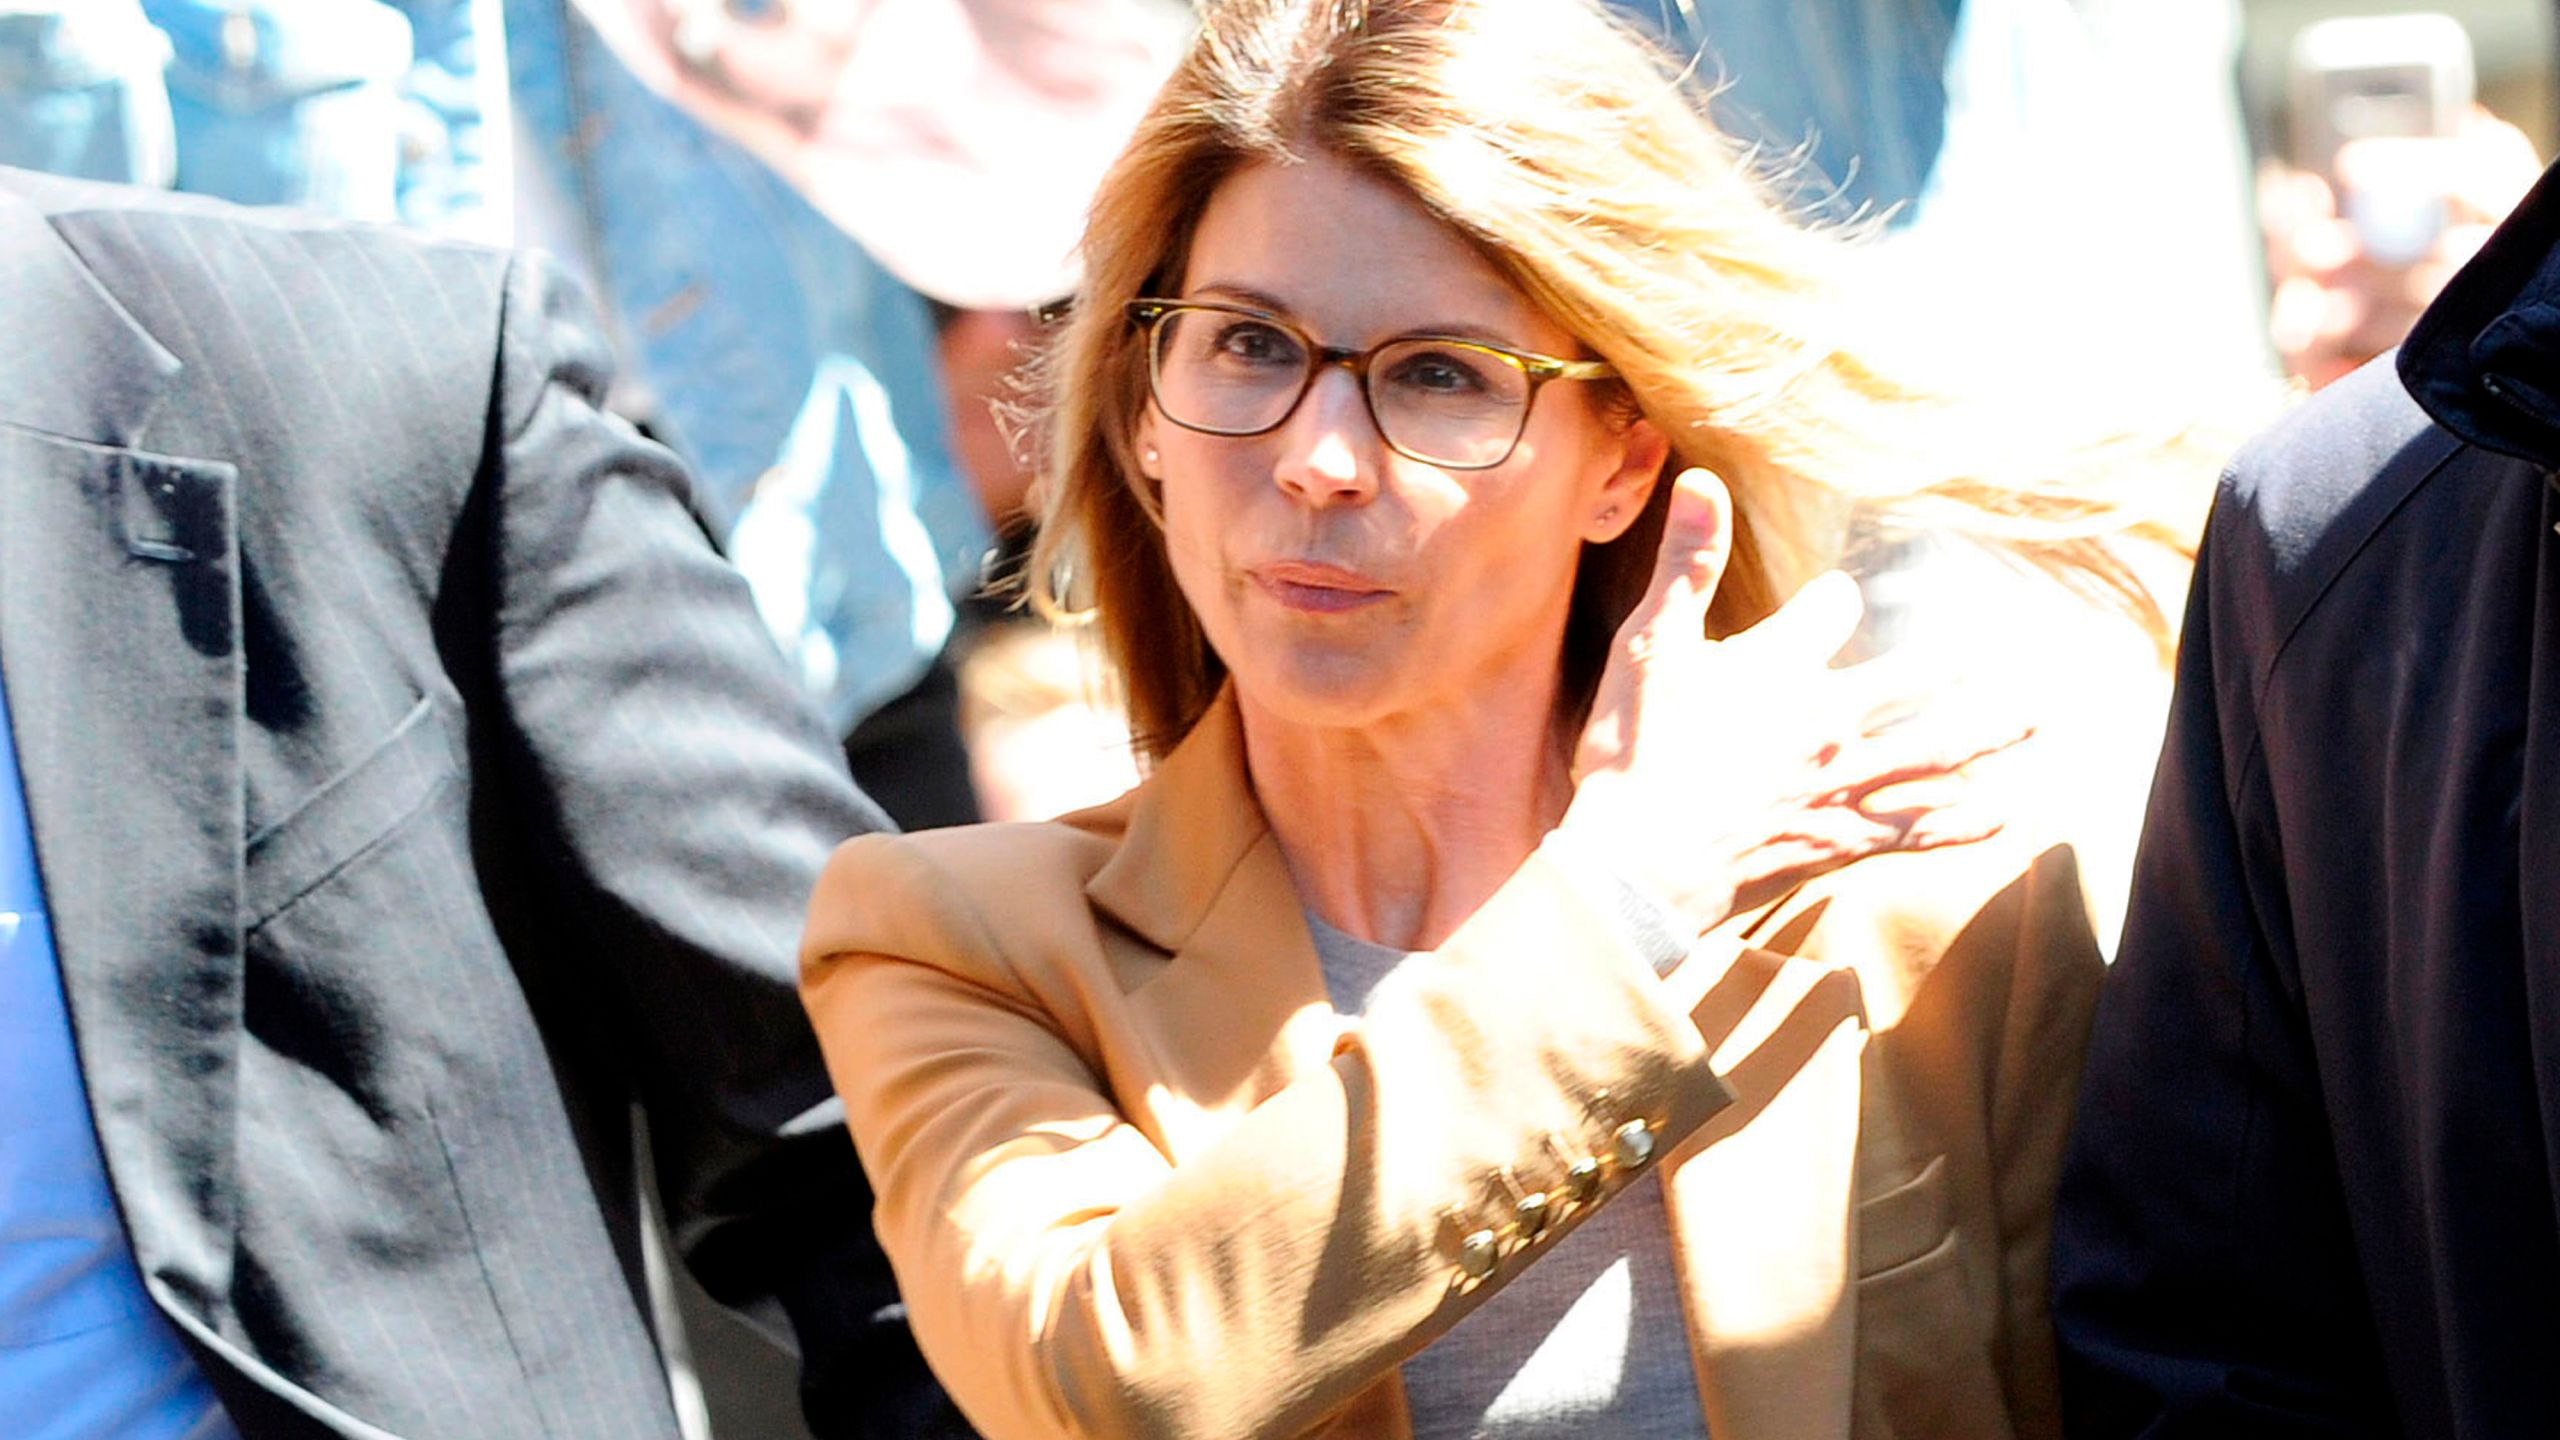 Actress Lori Loughlin arrives at the court to appear before Judge M. Page Kelley to face charge for allegedly conspiring to commit mail fraud and other charges in the college admissions scandal at the John Joseph Moakley United States Courthouse in Boston, Mass. on April 3, 2019. (Credit: JOSEPH PREZIOSO/AFP/Getty Images)